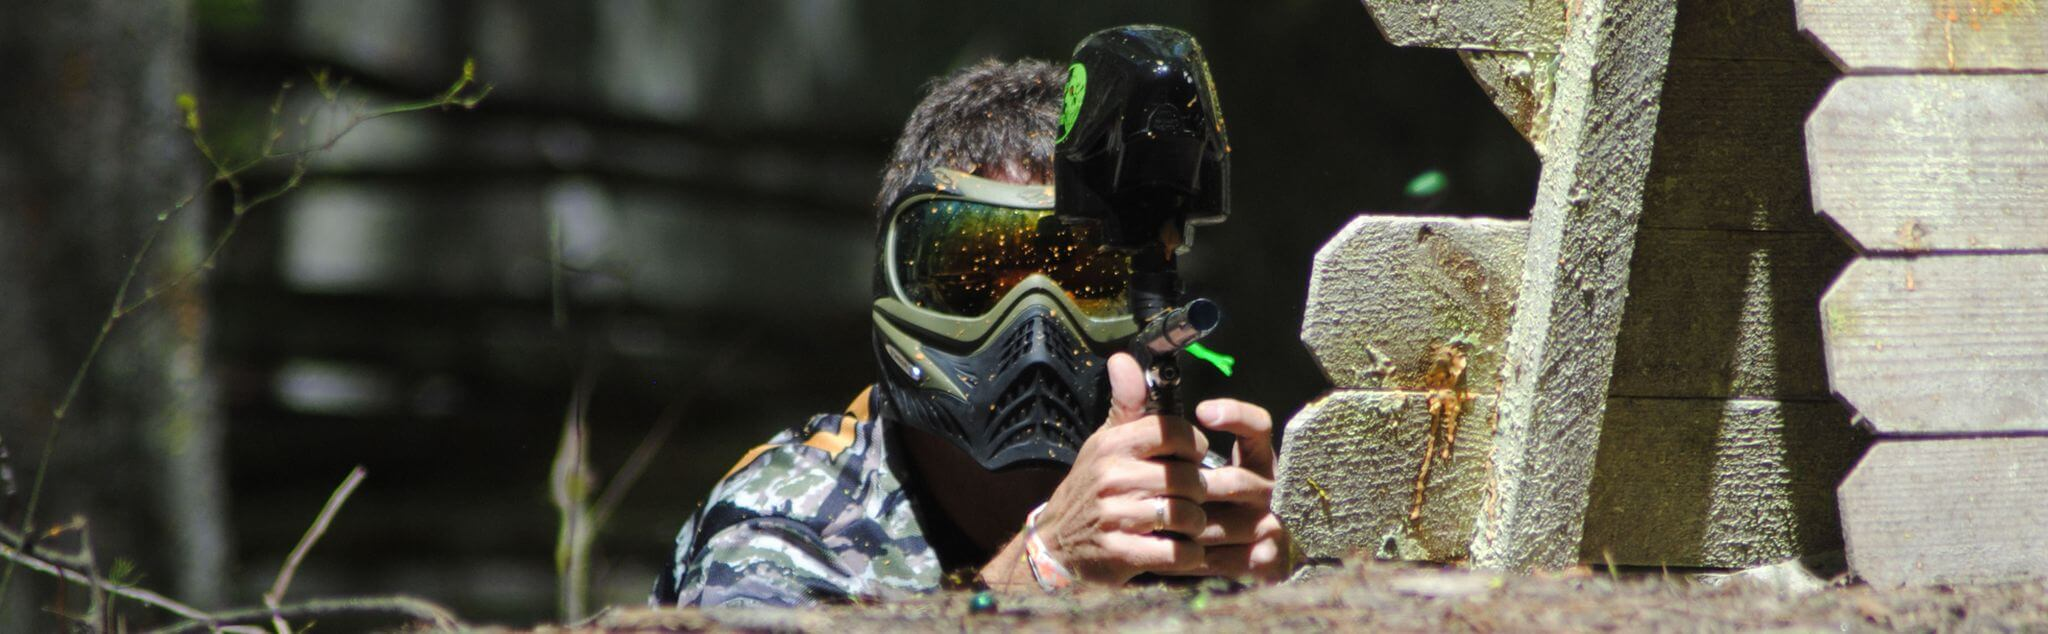 Paintball dans France